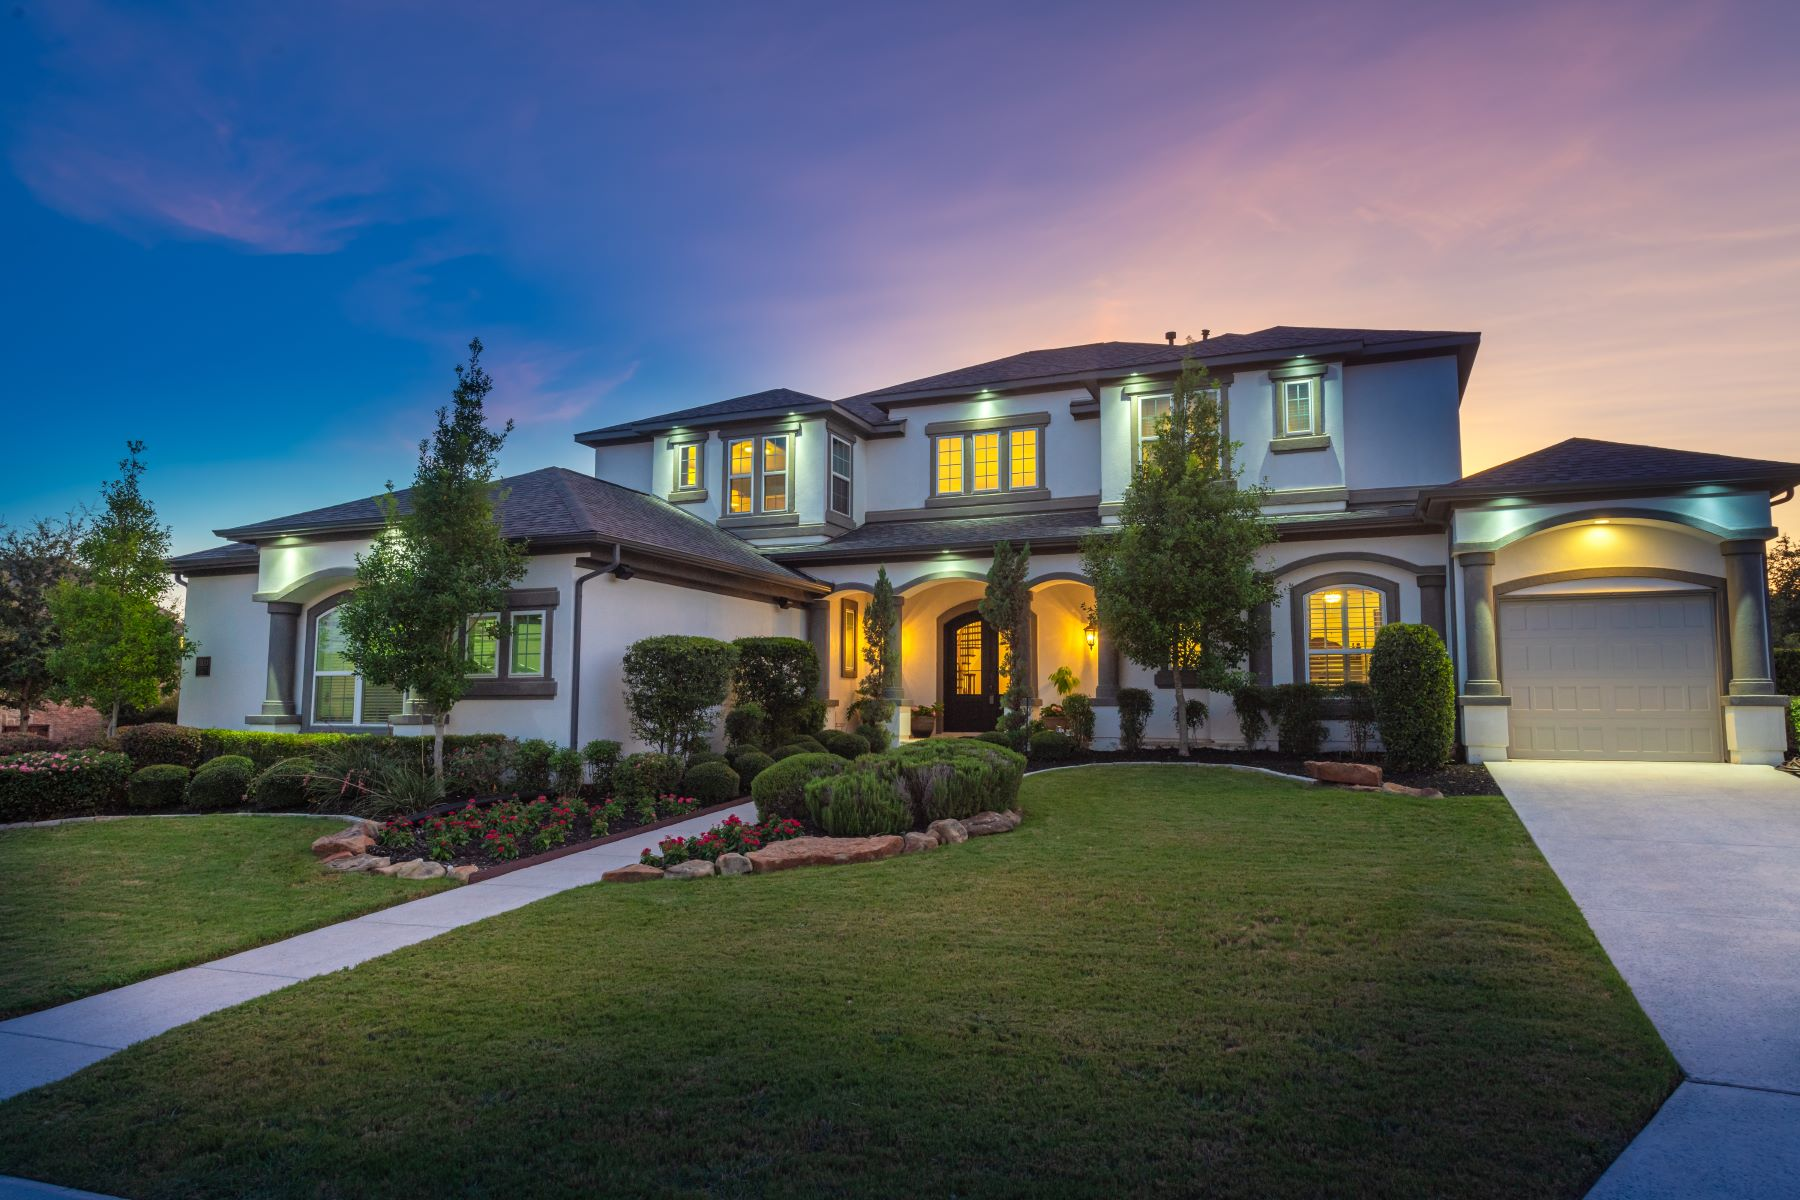 Single Family Homes for Active at Majestic Estate in Iron Horse Canyon 13111 Trotting Path Helotes, Texas 78023 United States